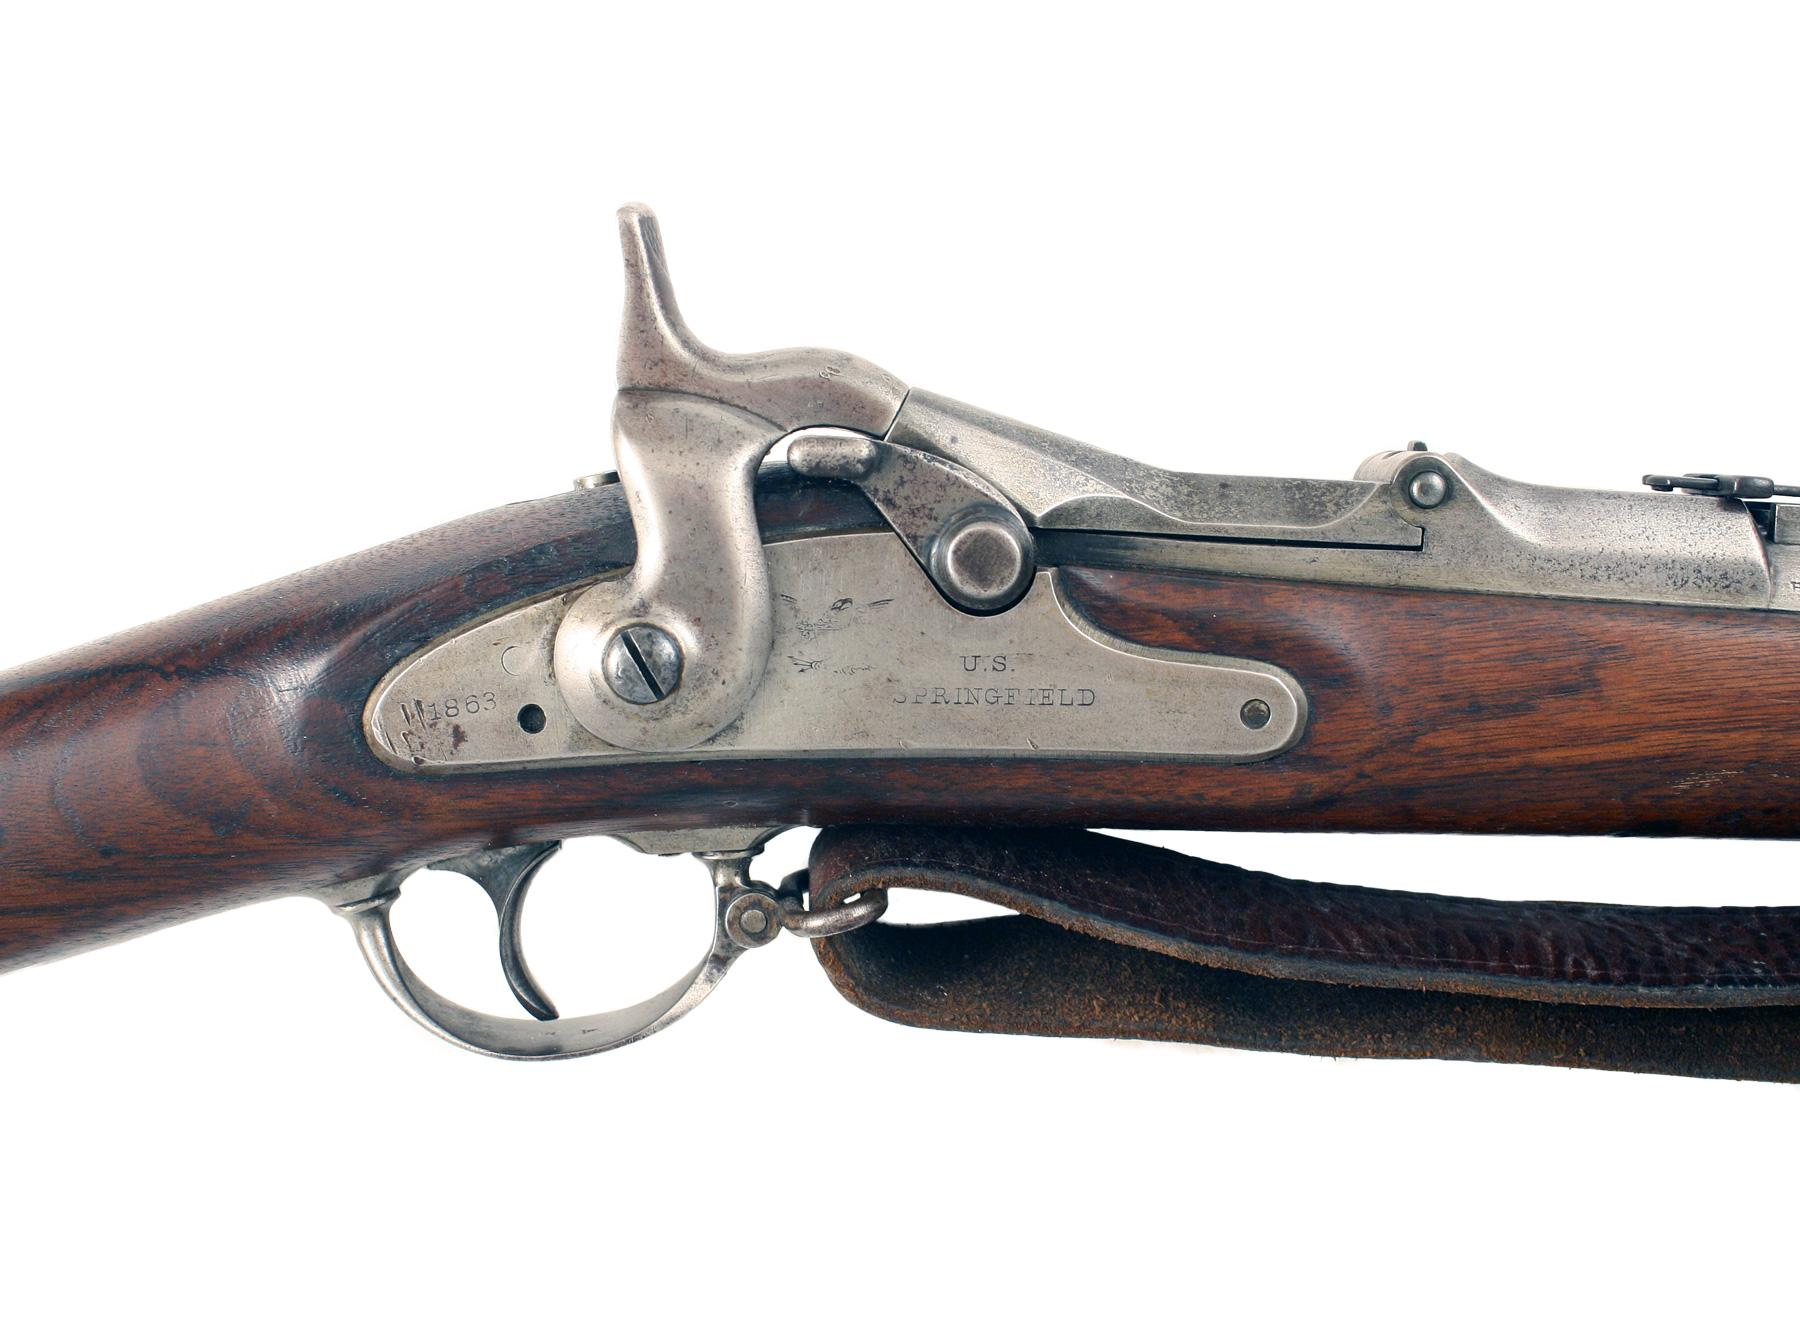 A Model 1868 U.S. Springfield Rifle